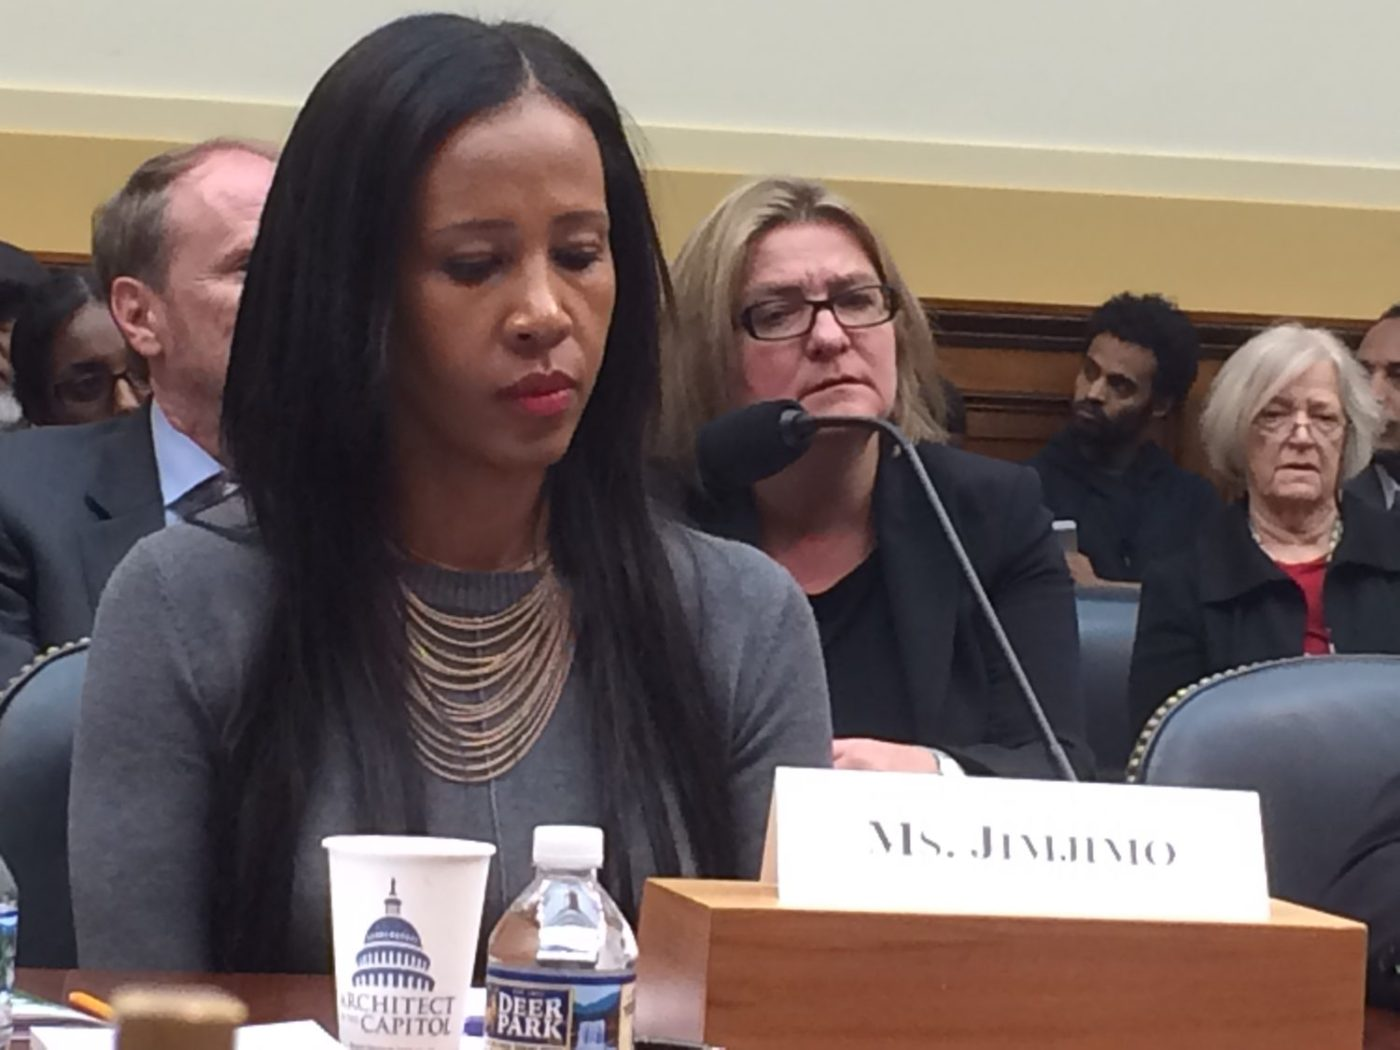 Seenaa-JimJimo-speaking-to-Congress-Oromo-genocide-030917-1400x1050, An interview with Oromo American human rights activist Seenaa Jimjimo on genocide in Ethiopia, World News & Views